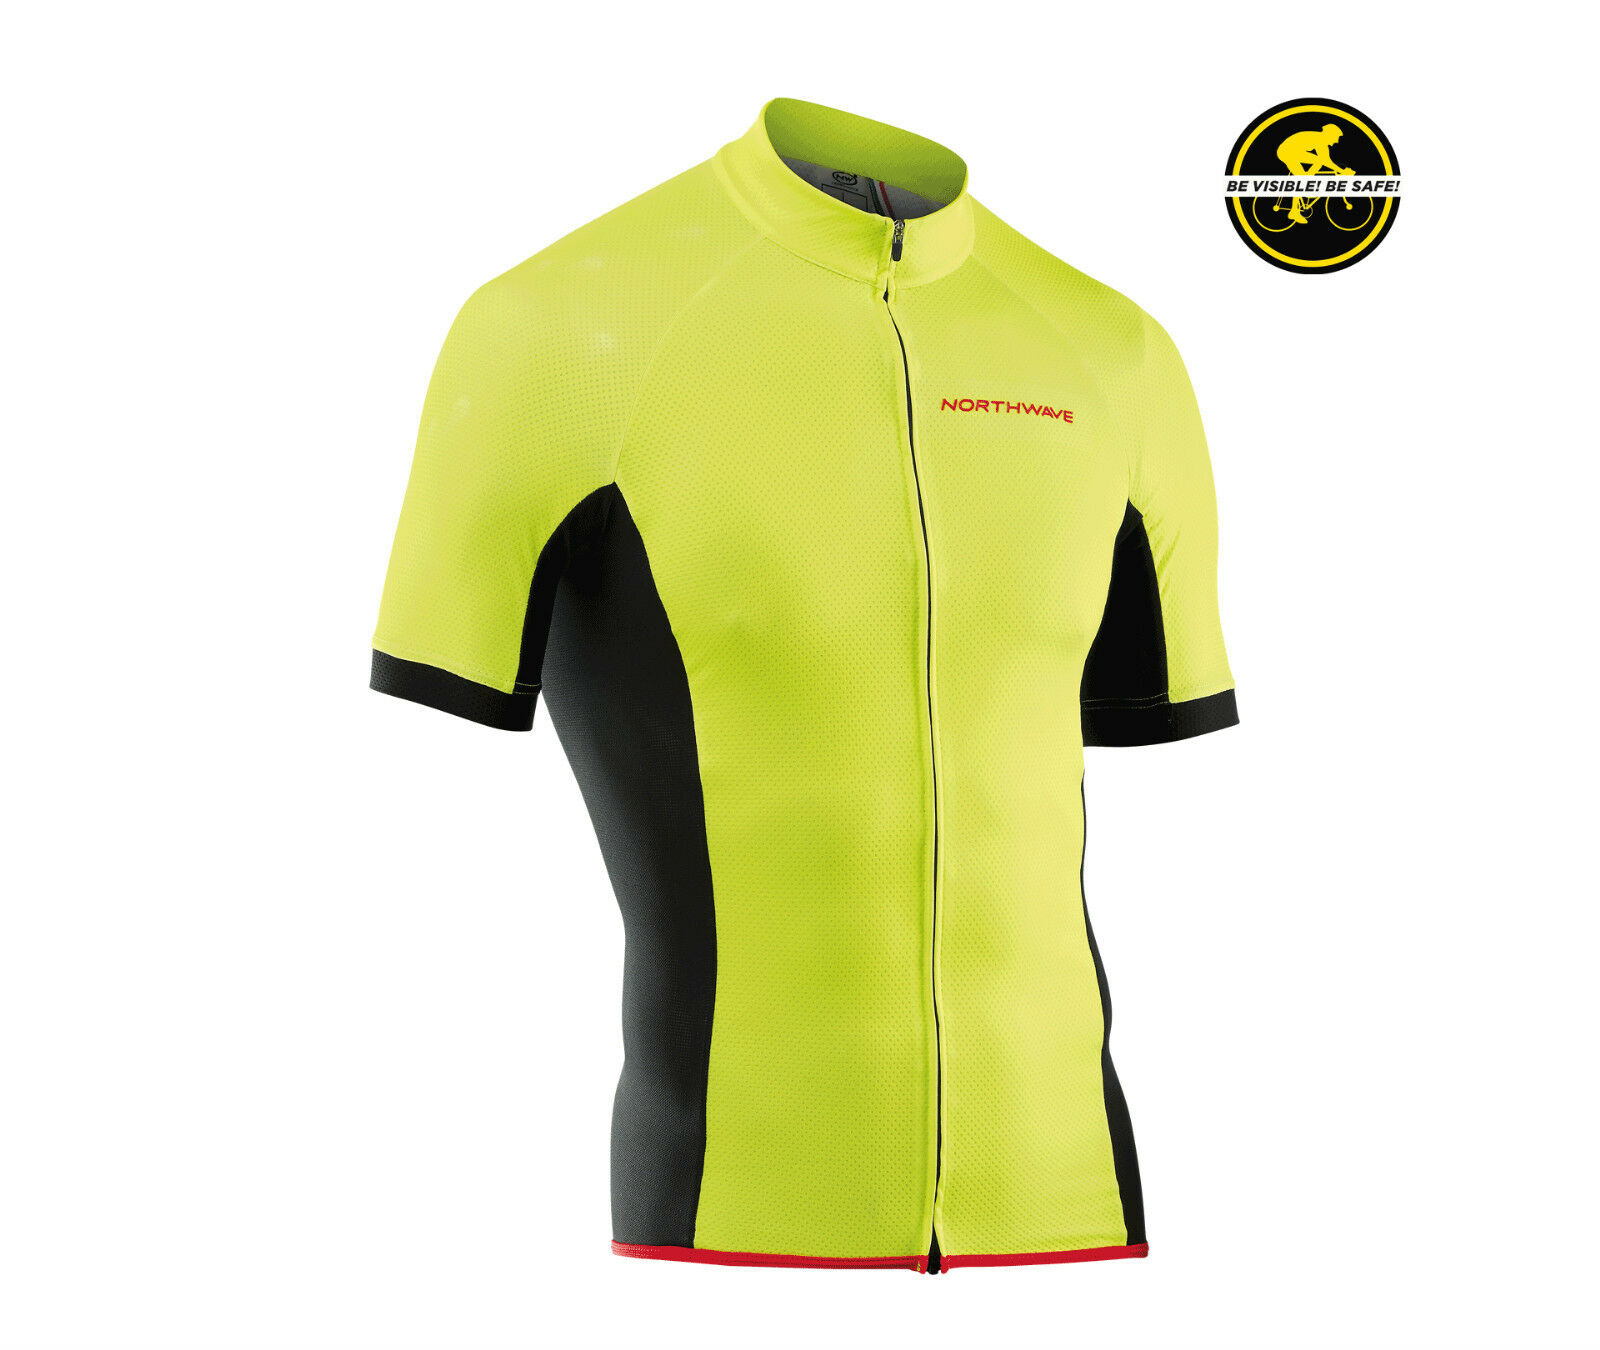 Maglia Manica Corta NORTHWAVE FORCE yellow Fluo JERSEY NORTHWAVE FORCE YELLOW